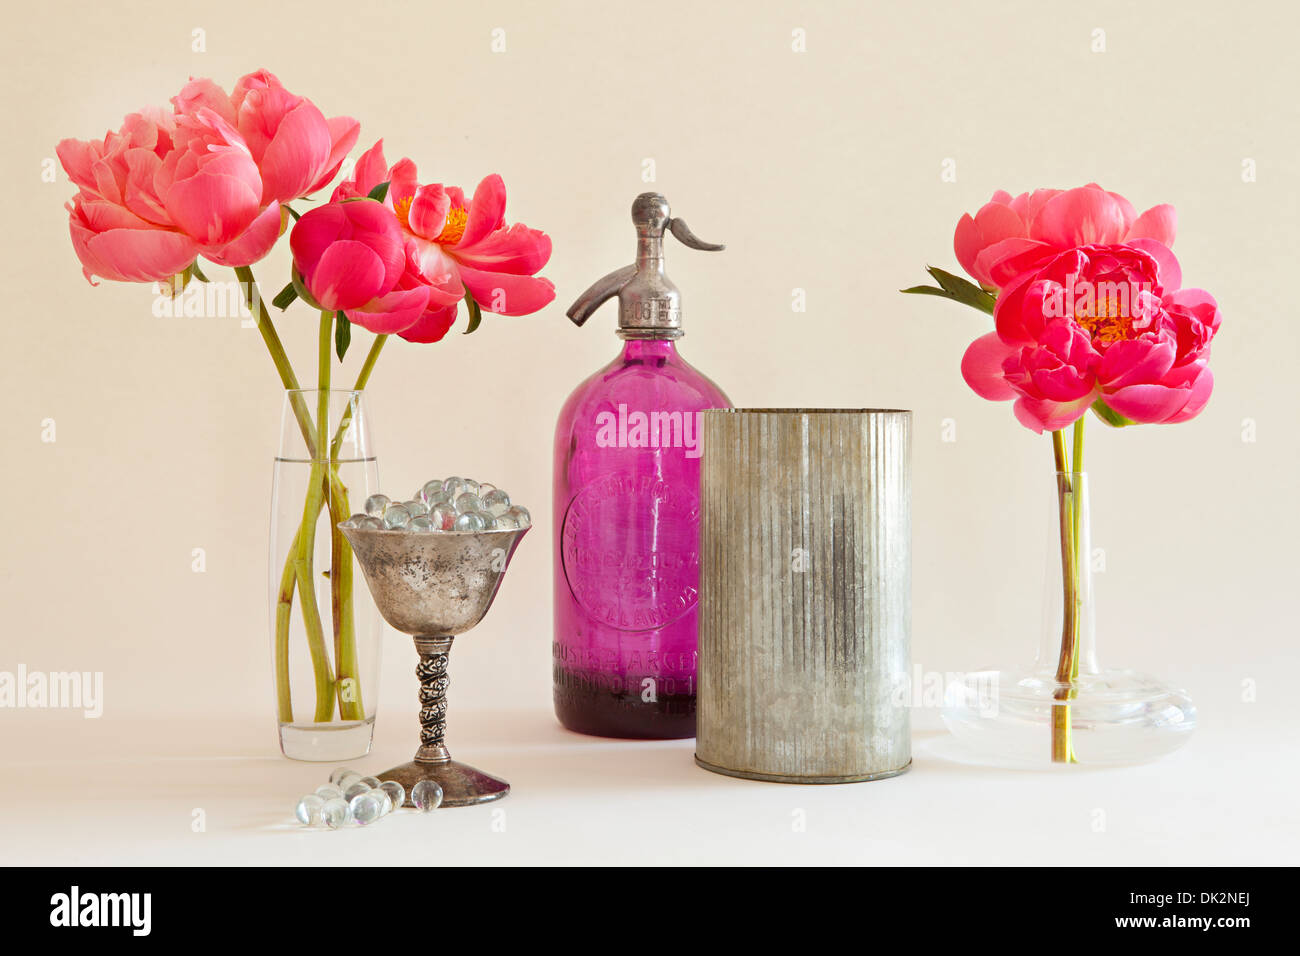 Still life of pink peonies in vases next to seltzer bottle and silver containers - Stock Image